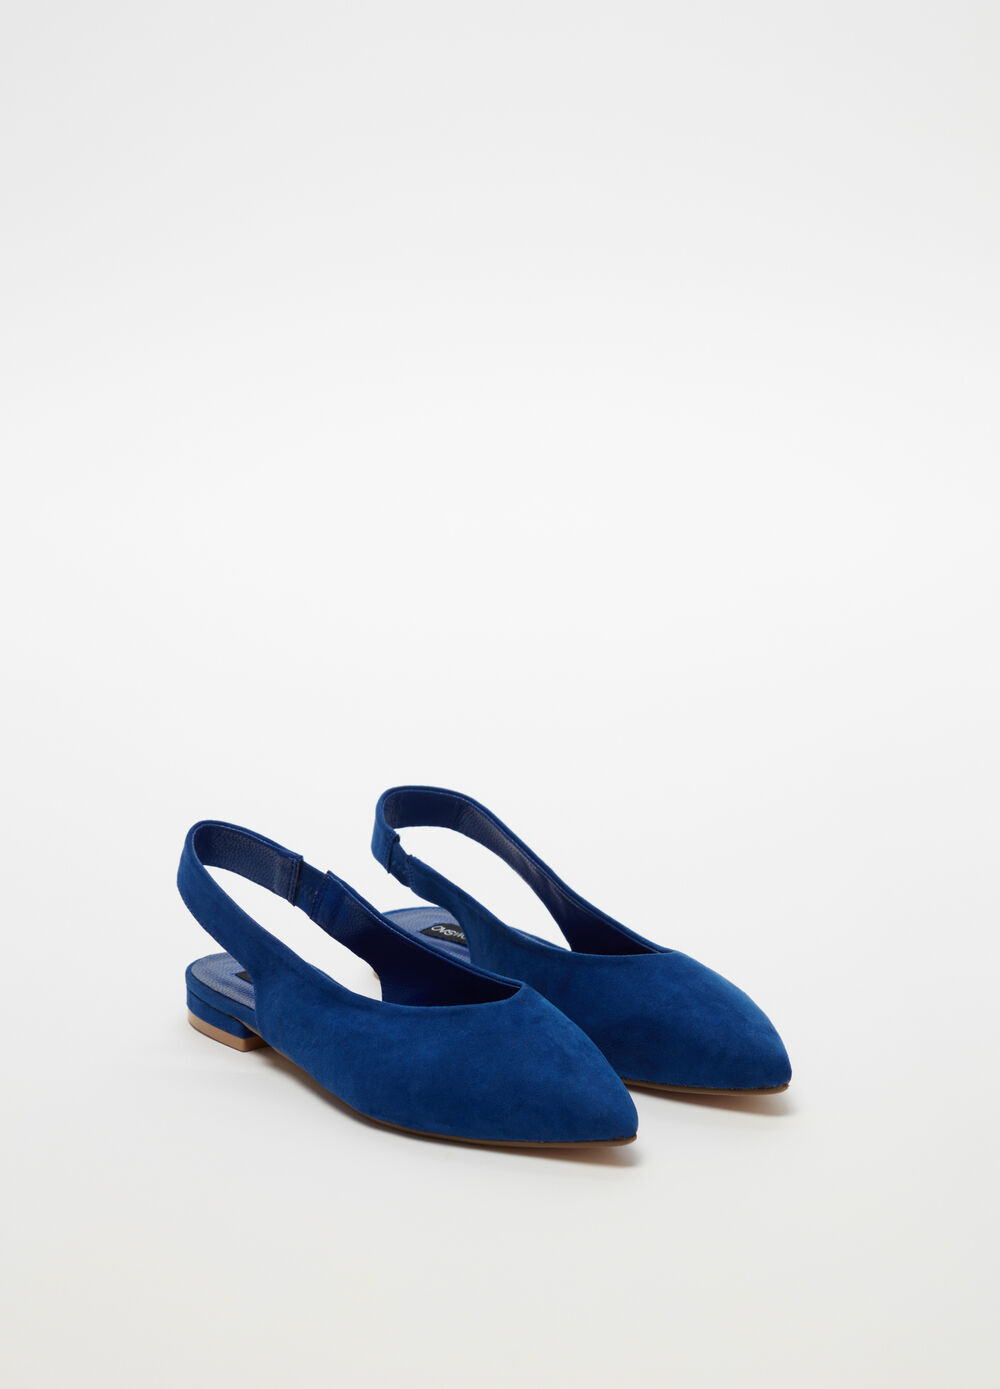 Pointed flat sandal